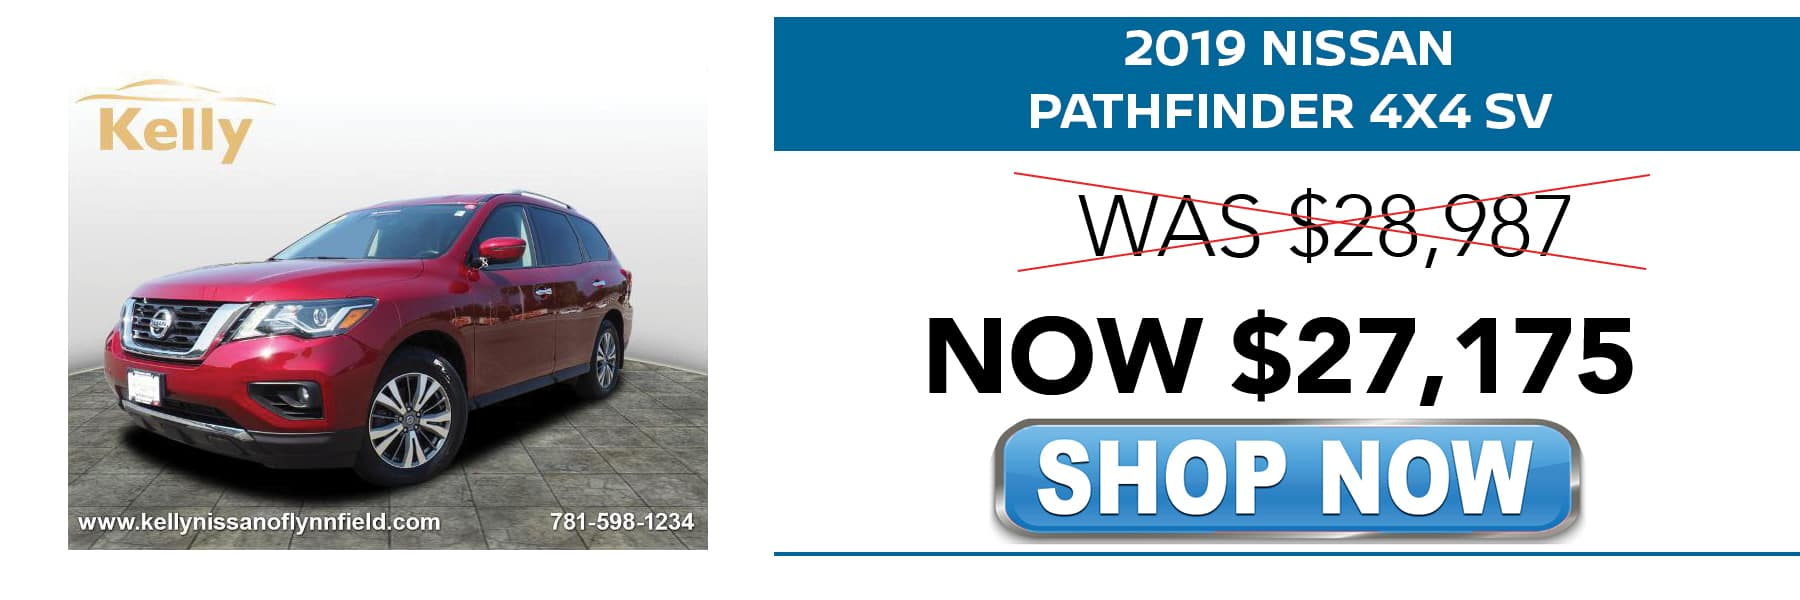 Certified Pre-Owned 2019 Nissan Pathfinder SV Now $27,175